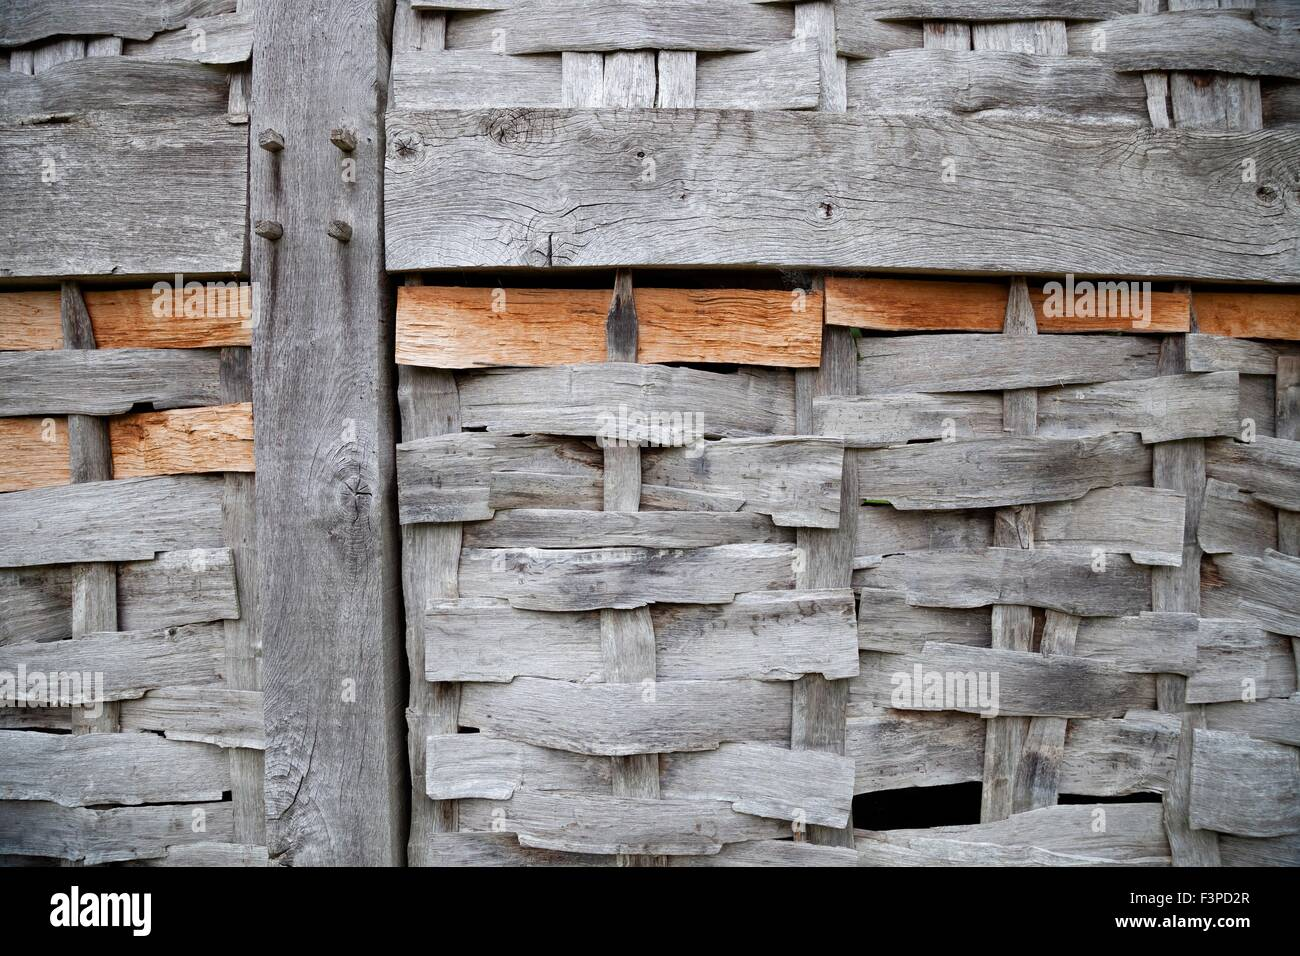 Wattle and timber-framed building panel, England. - Stock Image